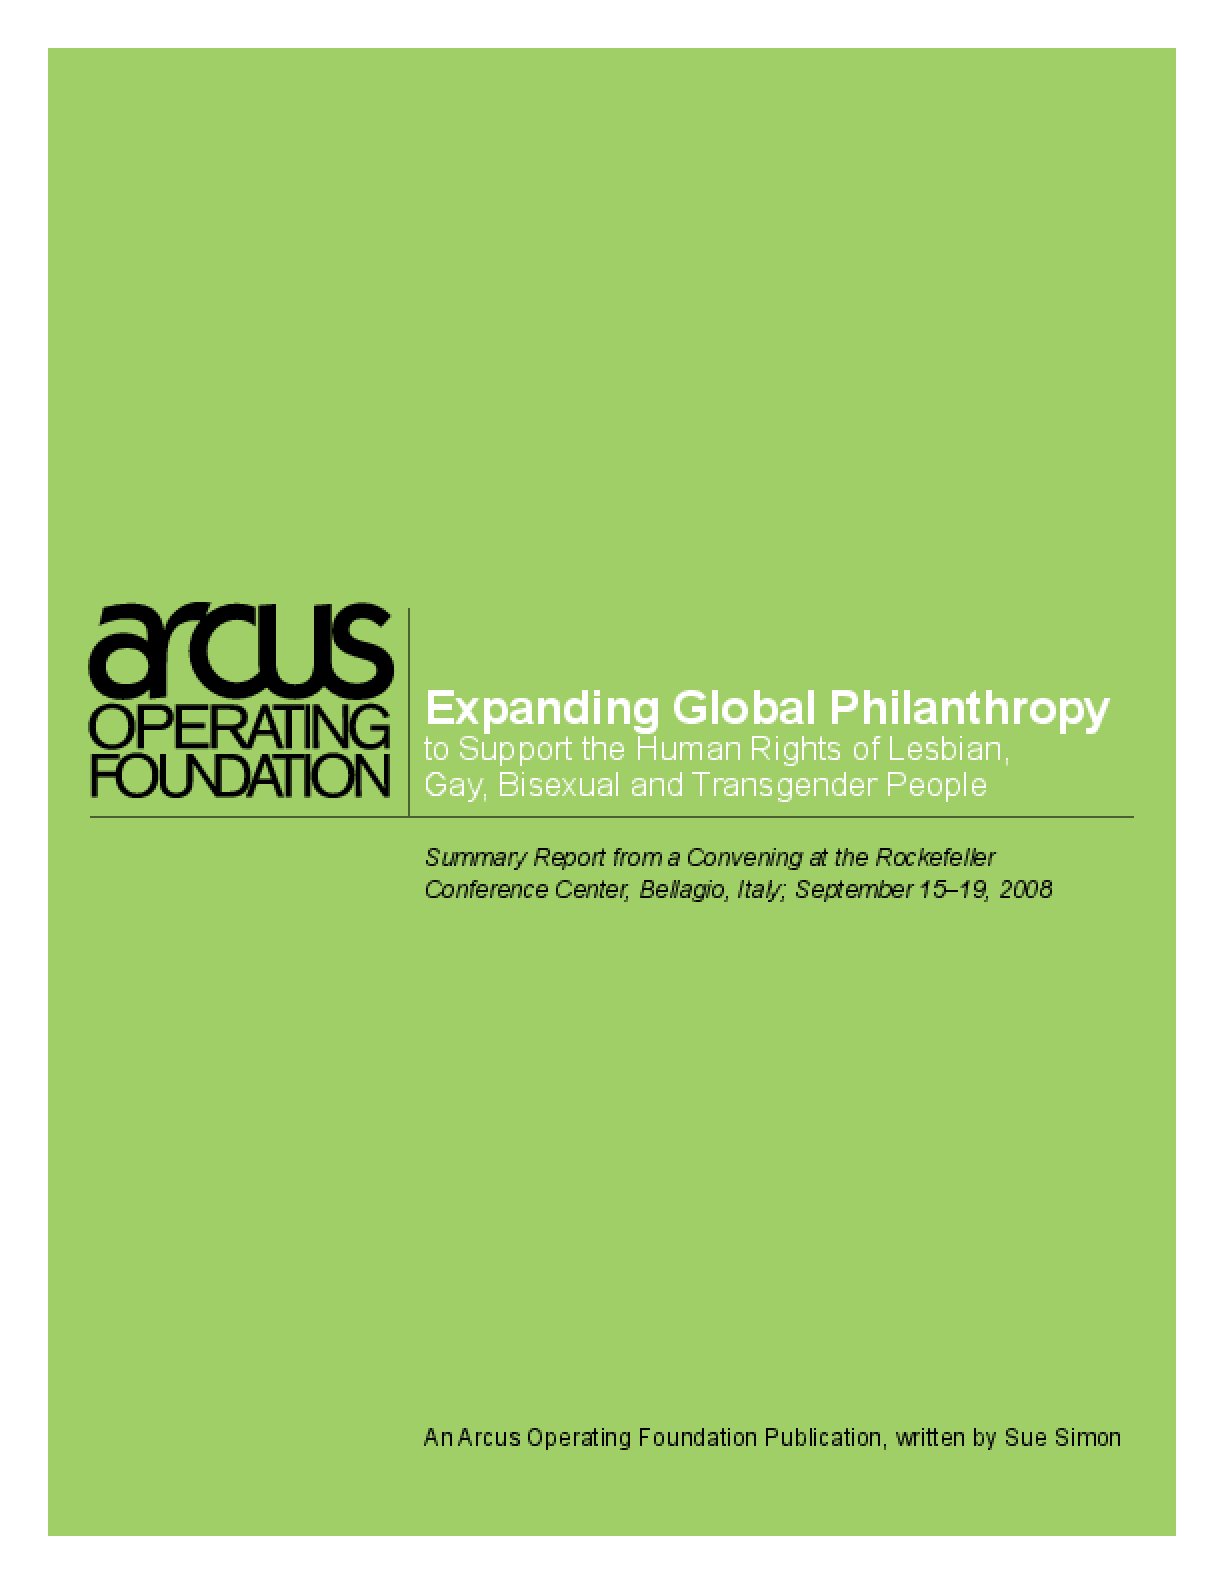 Expanding Global Philanthropy to Support the Human Rights of Lesbian, Gay, Bisexual and Transgender People